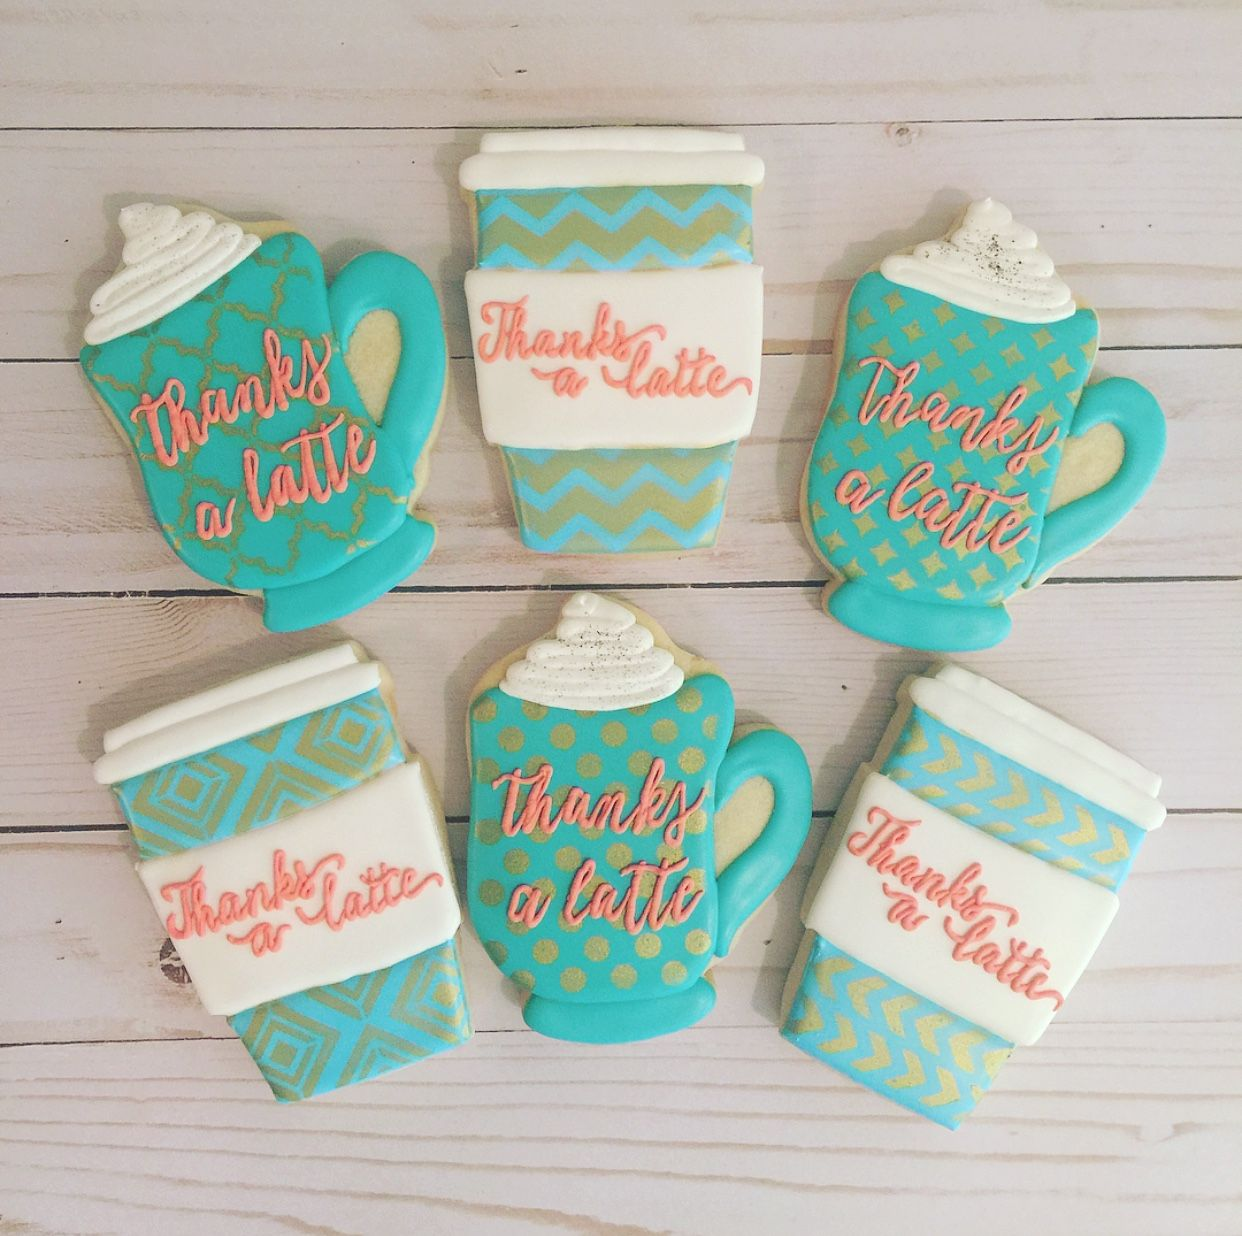 Administrative Professionals Day, Sugar Cookies, Coffee